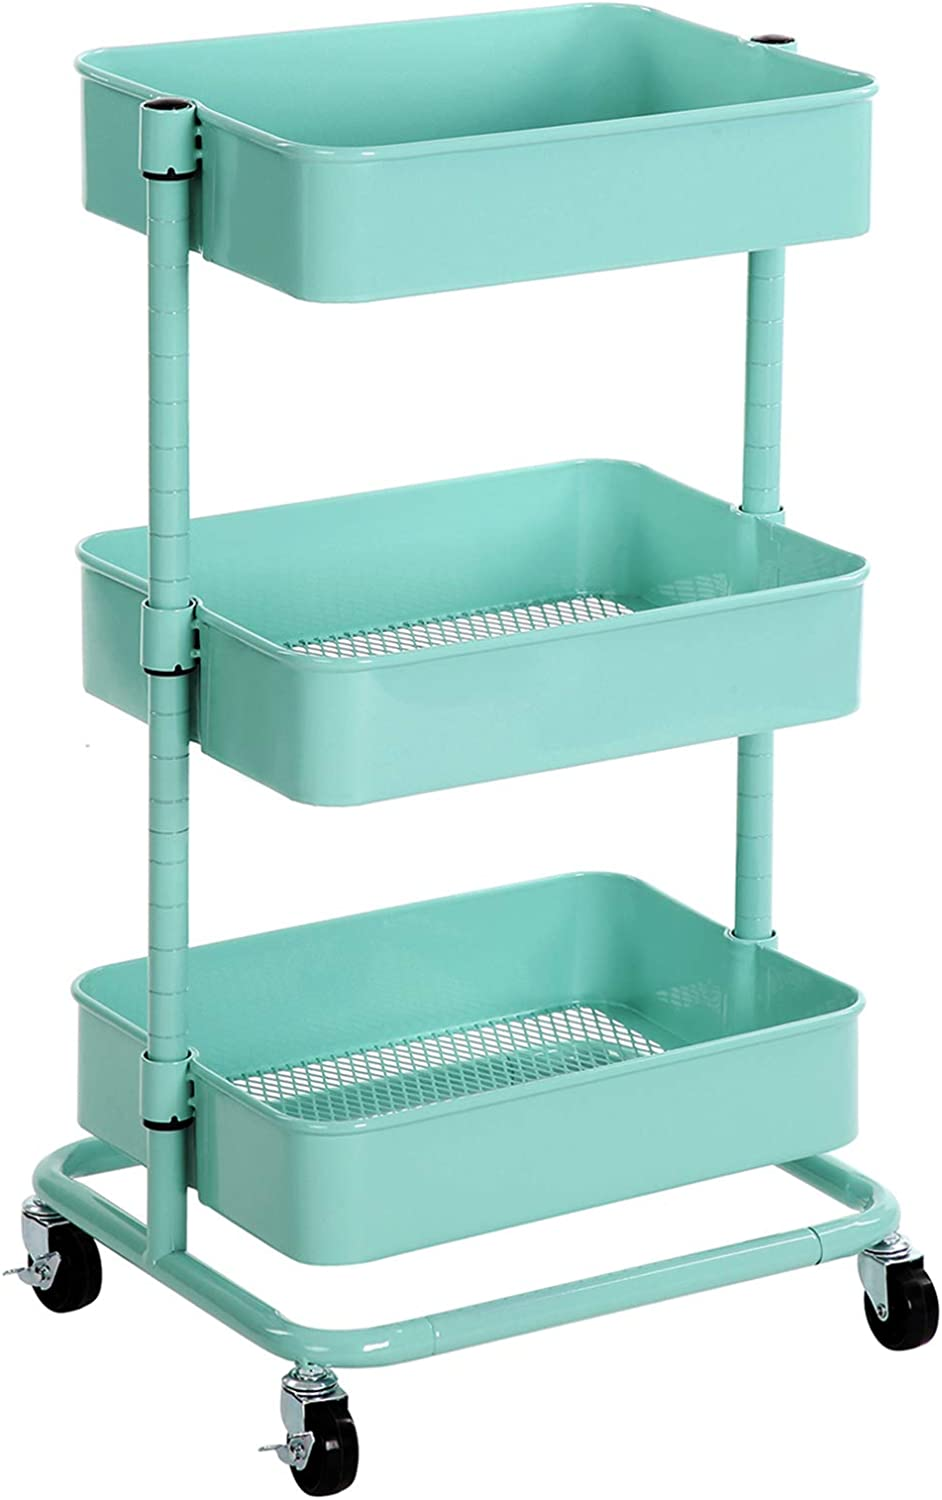 Amazon Com Songmics 3 Tier Metal Rolling Cart Utility Cart Kitchen Cart With Adjustable Shelves Storage Trolley With 2 Brakes Easy Assembly For Kitchen Office Bathroom Mint Green Ubsc60m Kitchen Dining